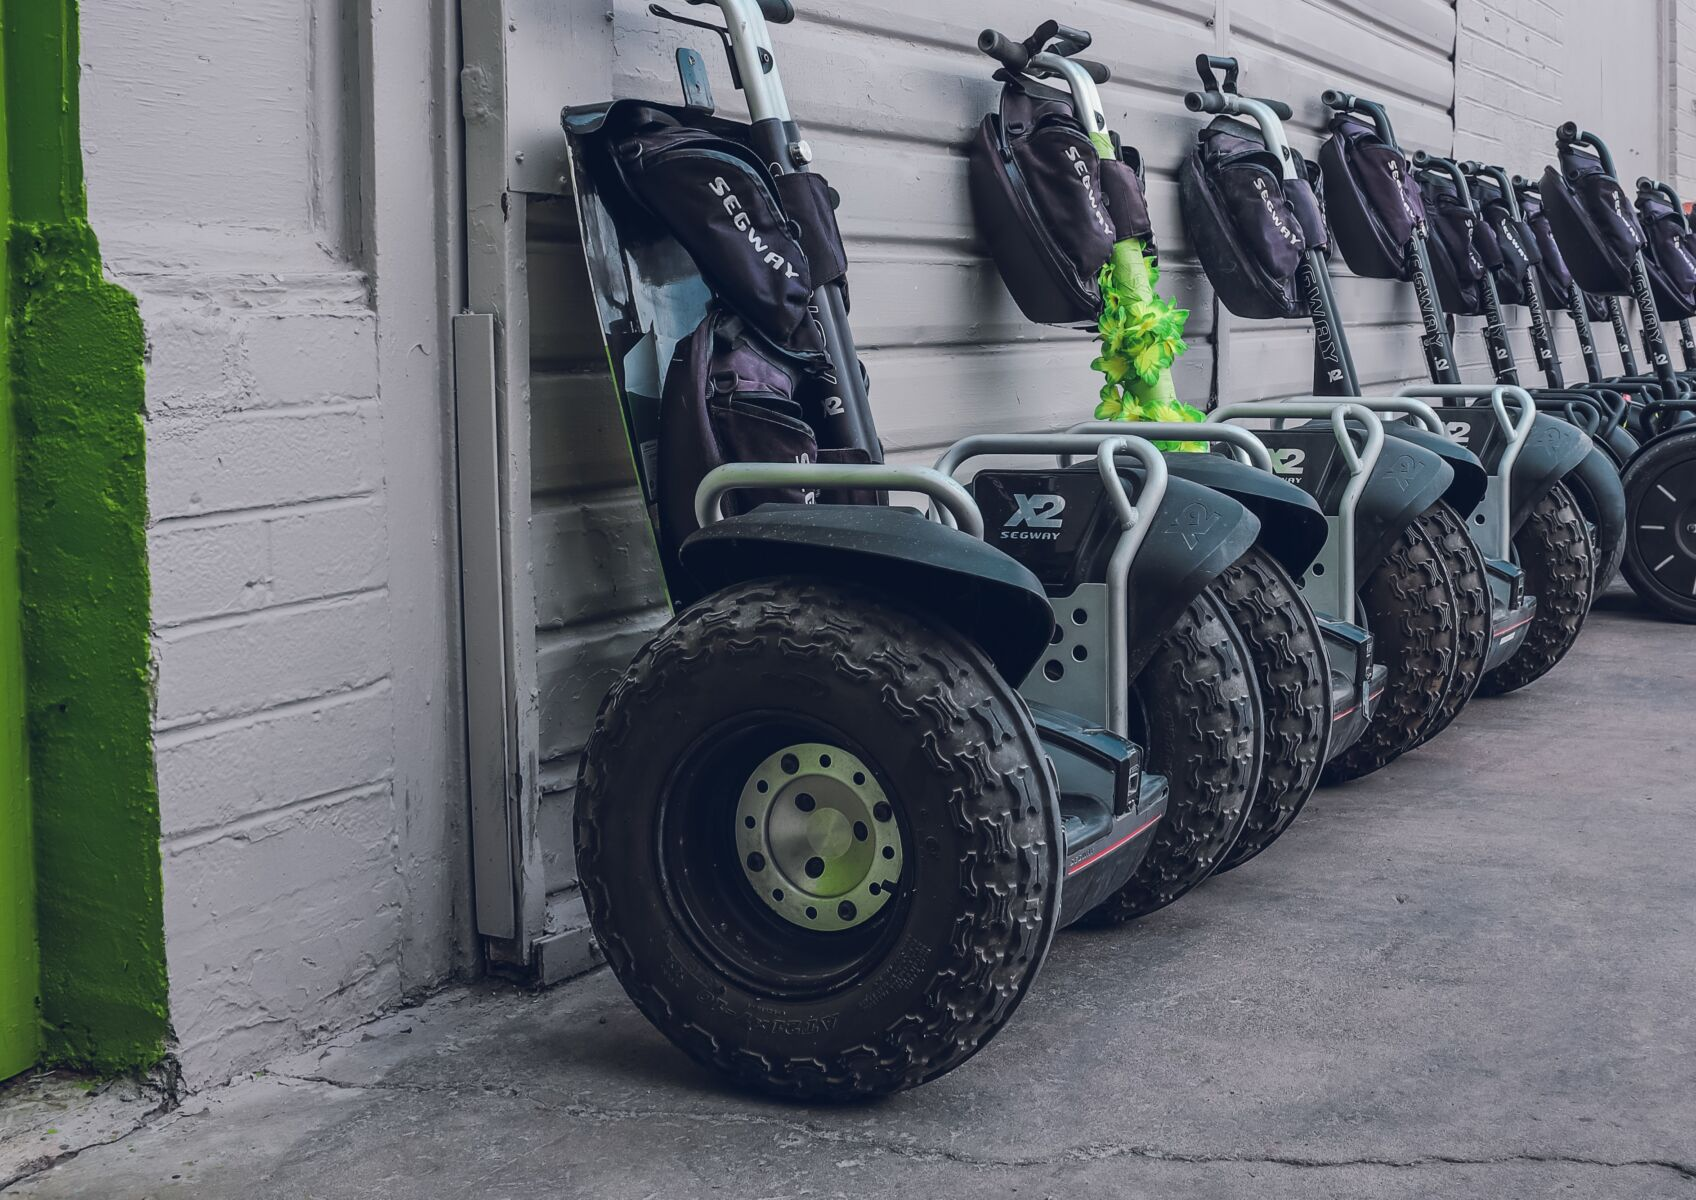 segway vehicles lined up